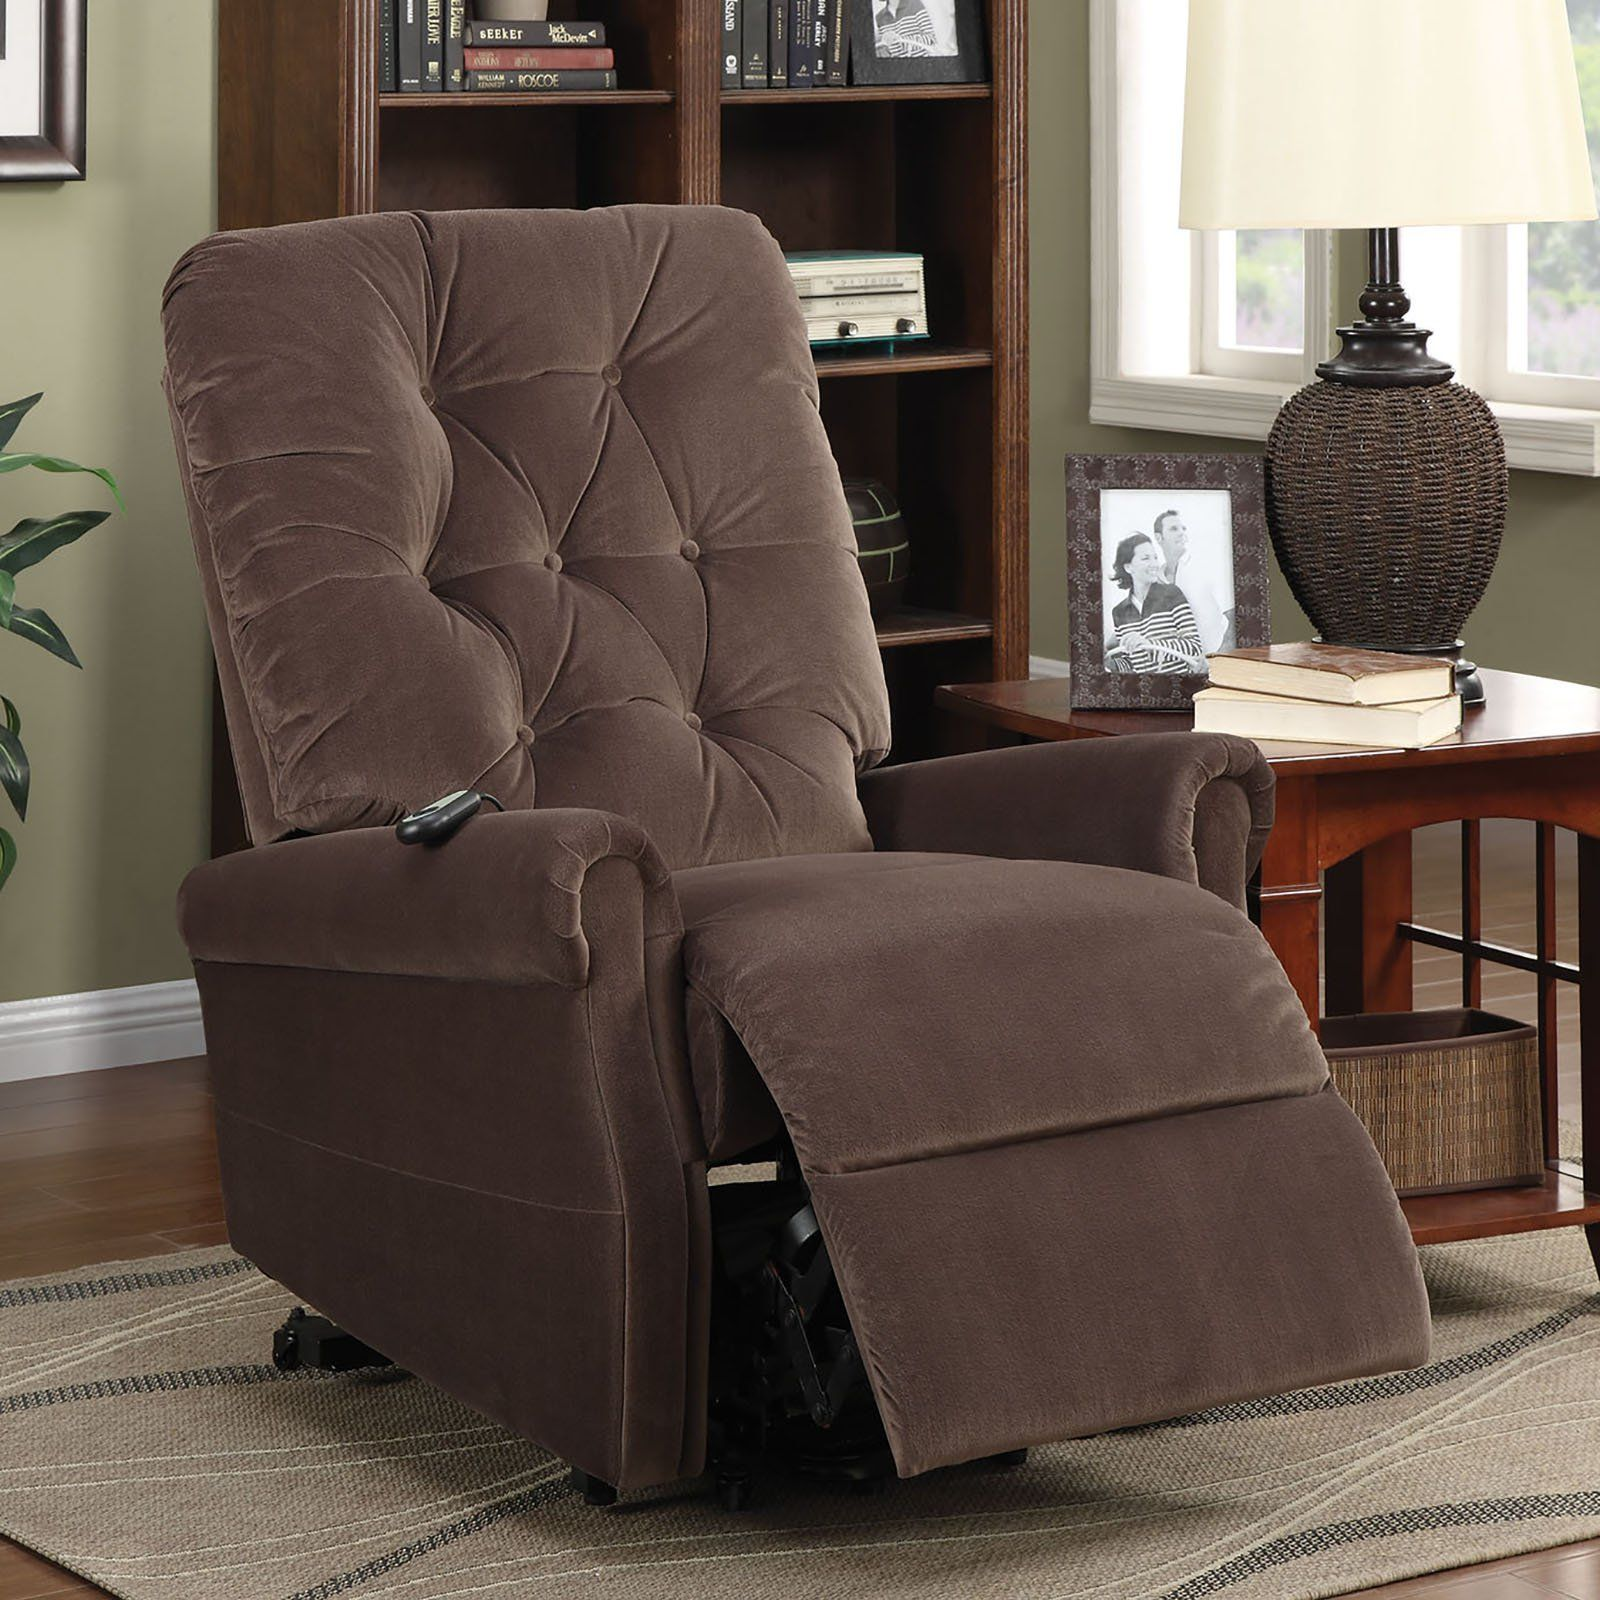 Acme Furniture Zody Power Lift Recliner 59241 Recliner